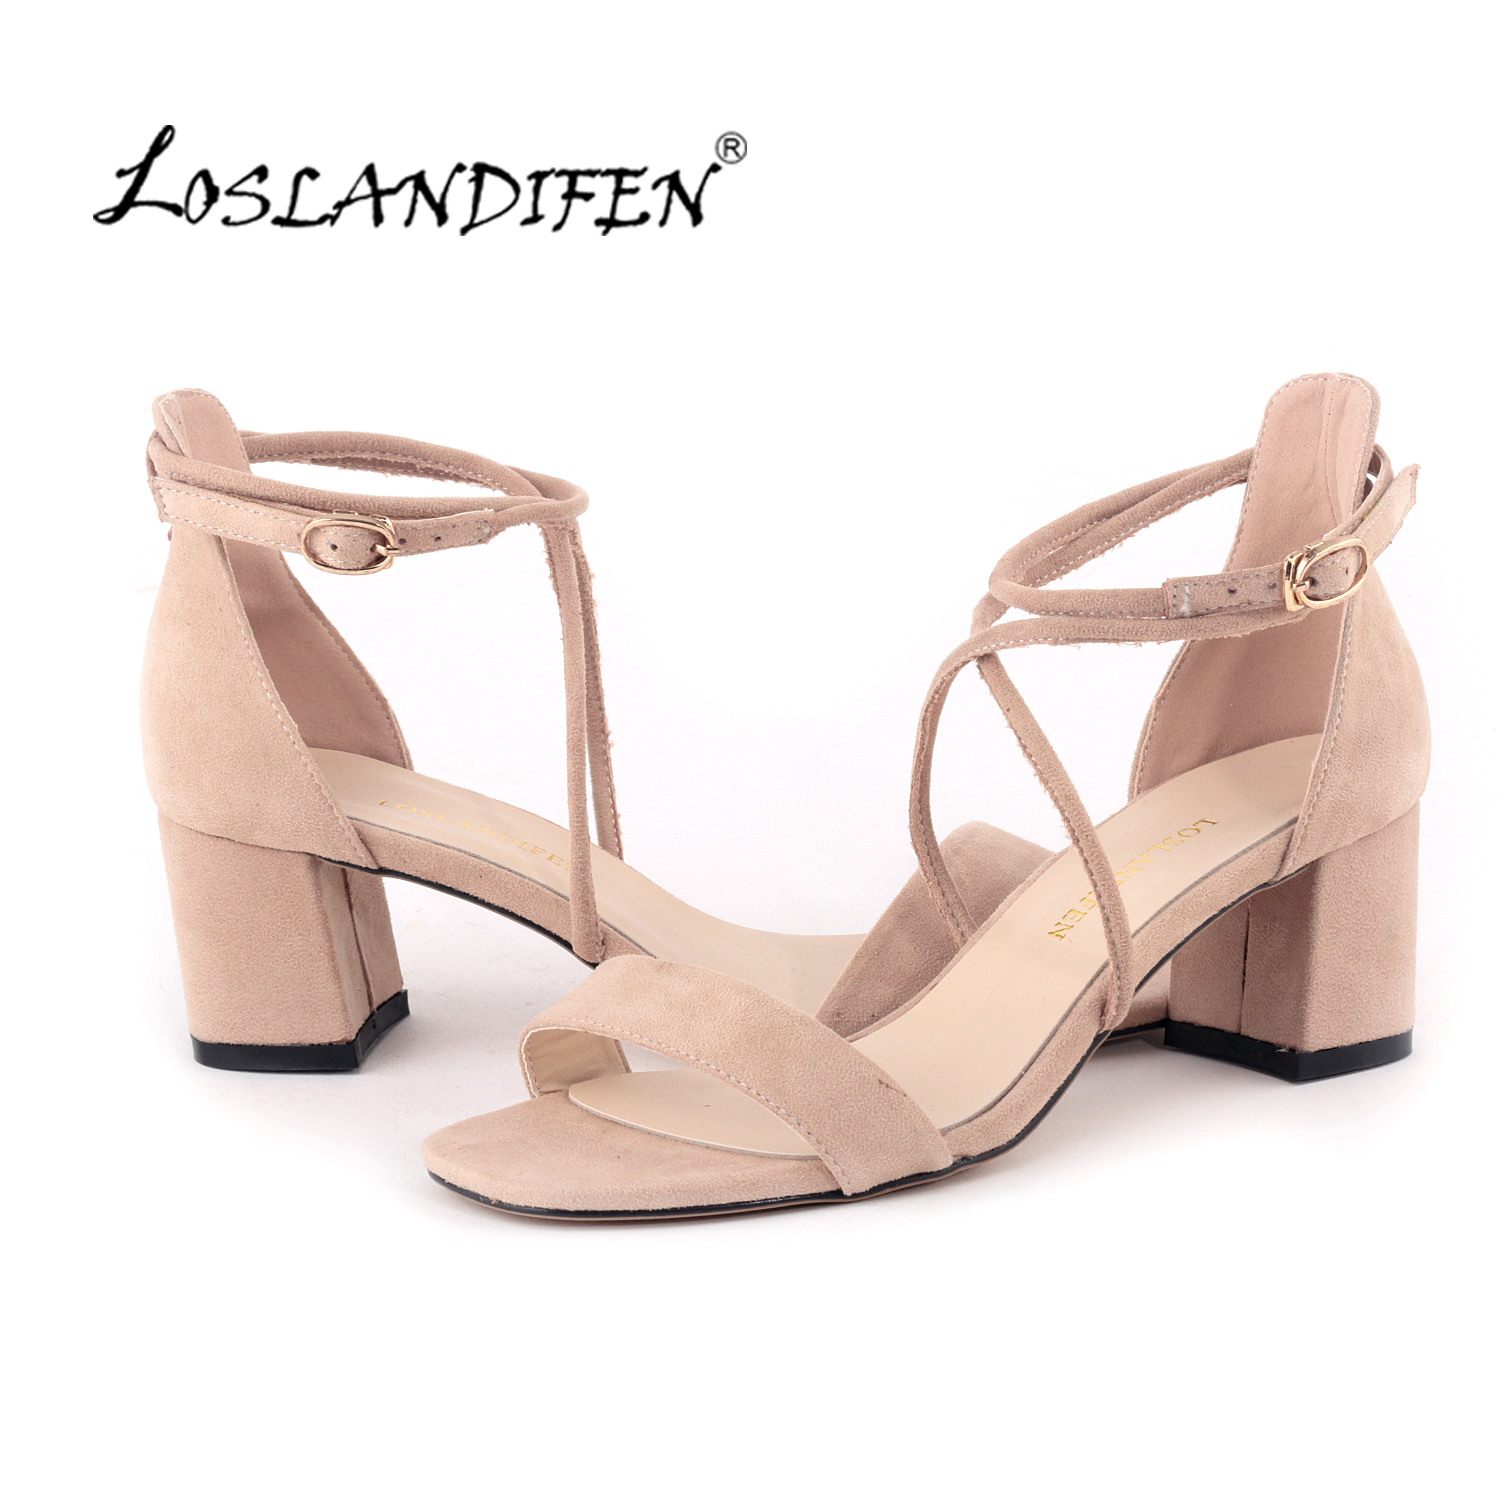 LOSLANDIFEN Fashion Women Velvet Sandals Stripe Ankle Buckle Office Pumps Thick High Heel Shoes Sweet Wedding Shoes 6050-1VE ocma mec 1 recommendations for the protection of diesel engines operat in hazard areas